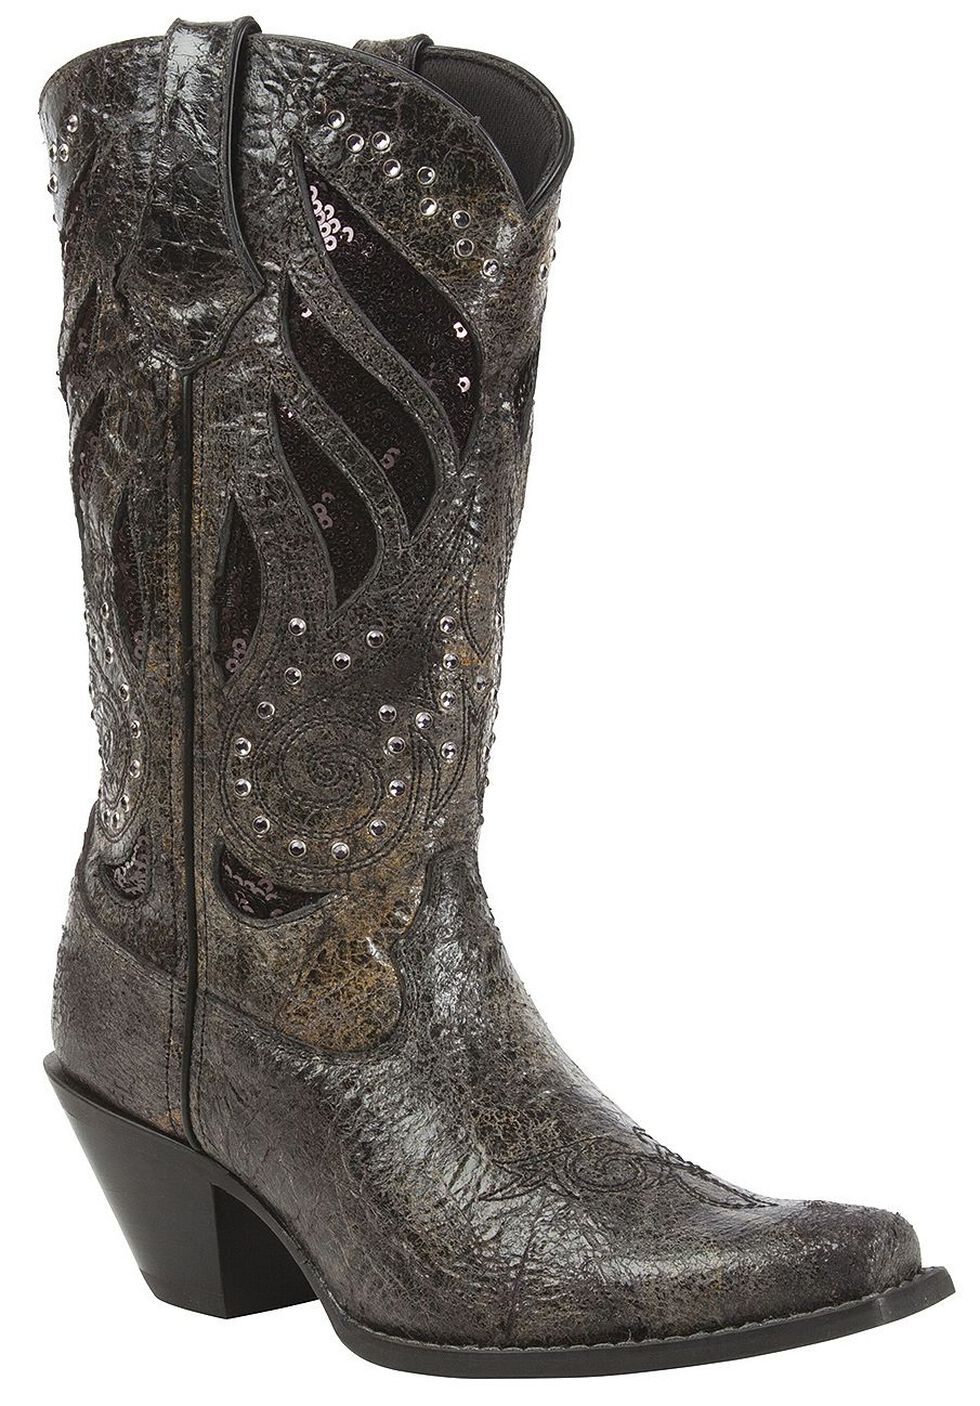 Durango Crush Sequin Inlay & Studded Cowgirl Boots - Snip Toe, Black, hi-res